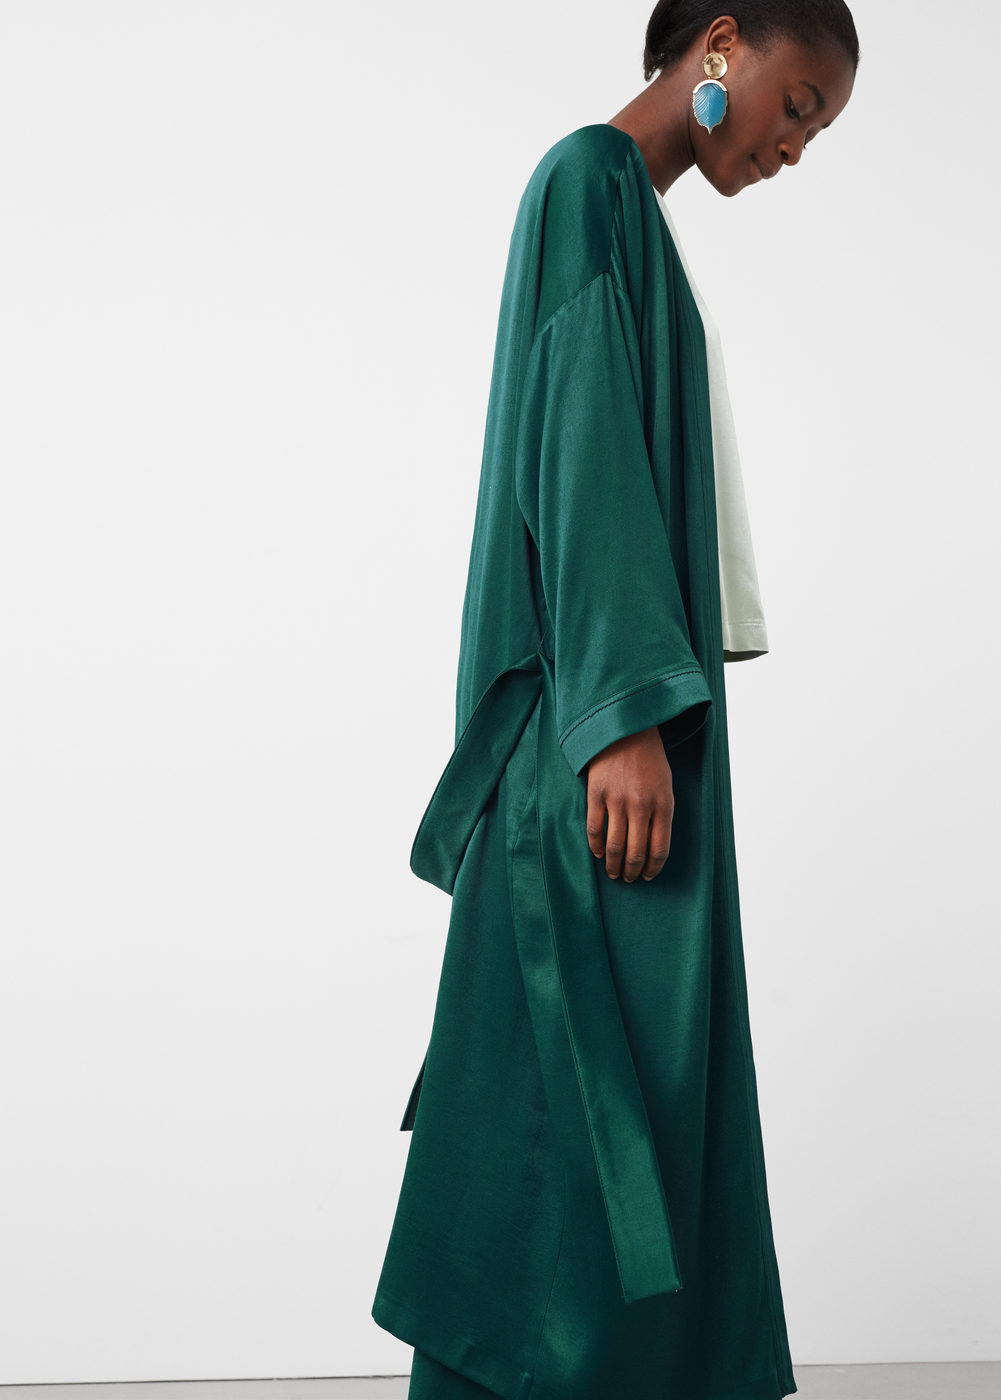 This silk robe   is amazing and the I'm also loving the green color. I can totally see myself lounging around in this or going out in it paired with a nice tailored pant. I can imagine the amount of stares already.